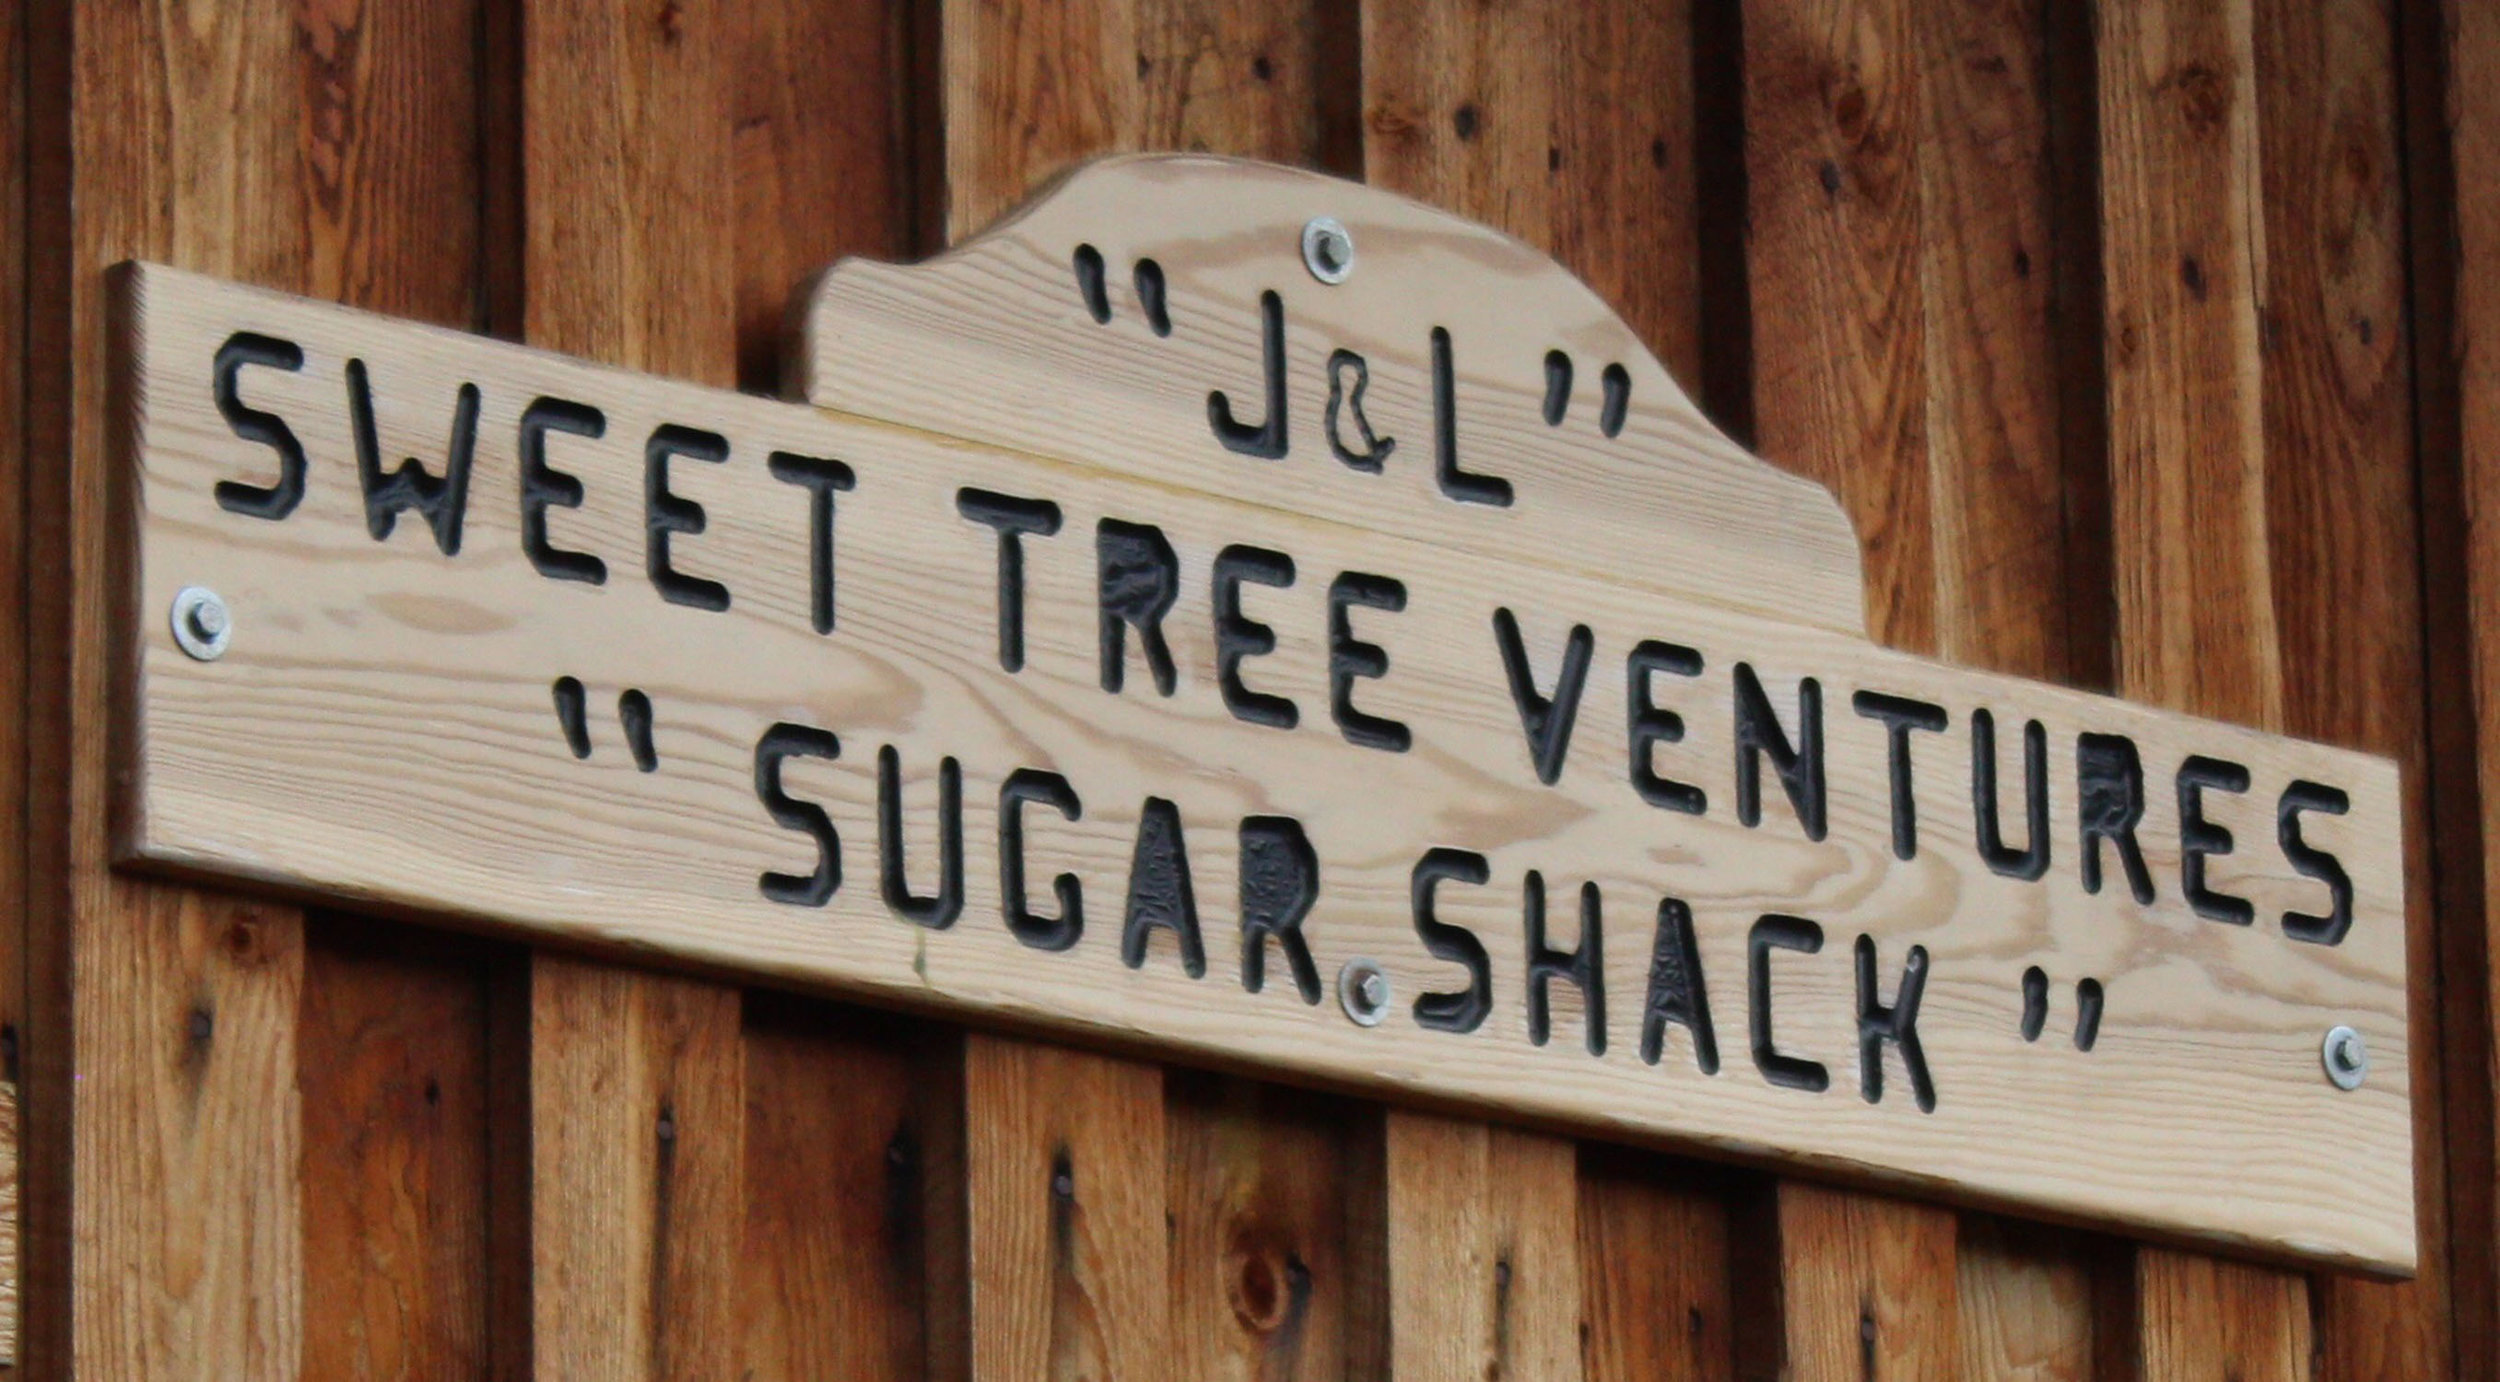 Let's all go to the Sugar Shack where the sap is transformed into liquid gold!